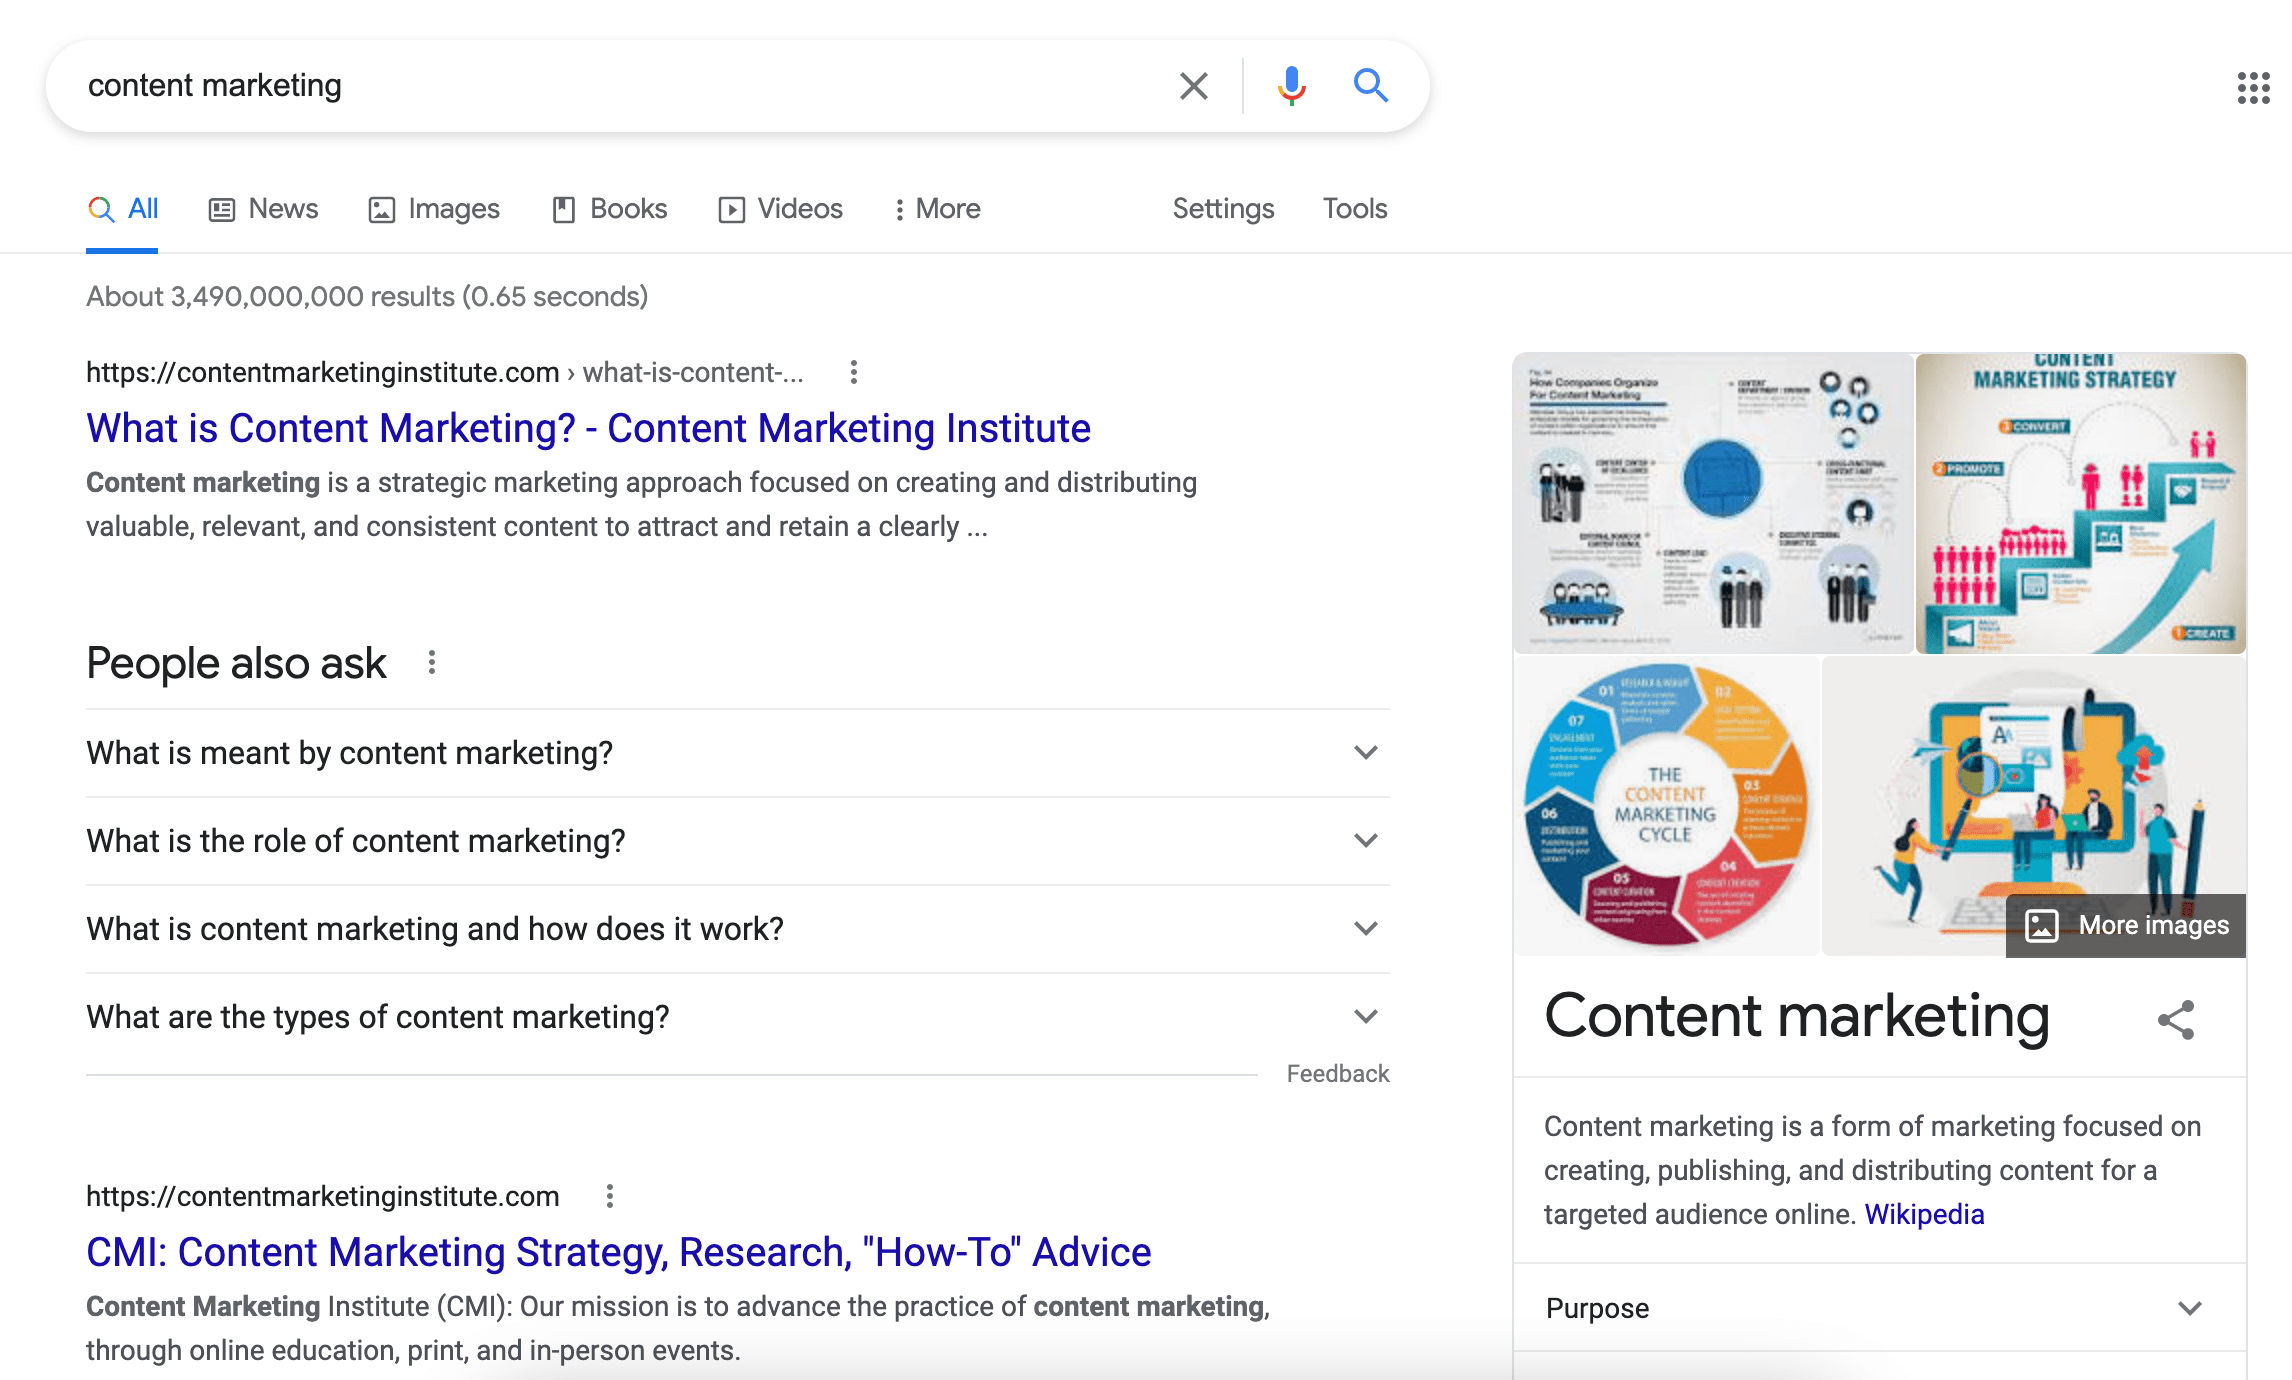 definition-related search results for the term content marketing